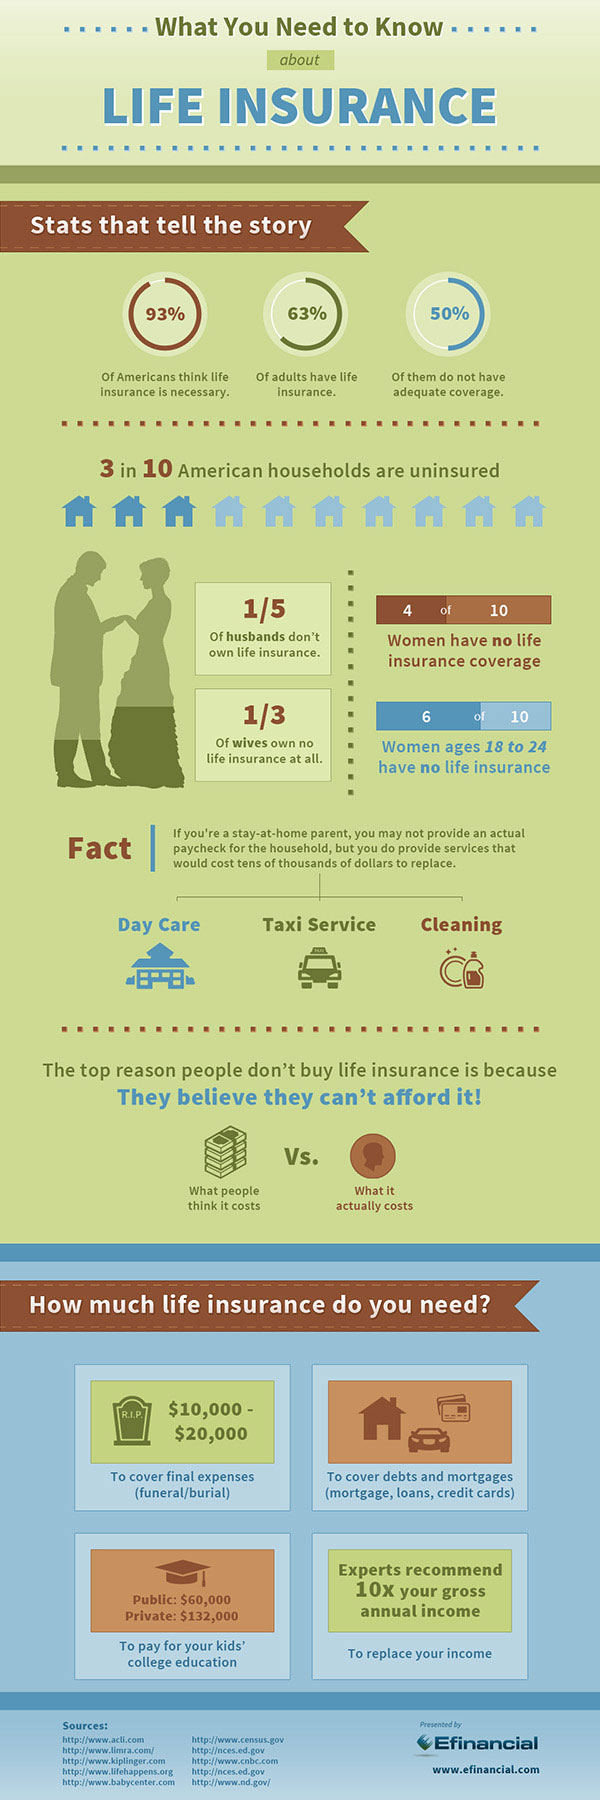 Elephant Auto Insurance Quote Impressive What You Should Know About Life Insurance Infographic  Sfgate . Review